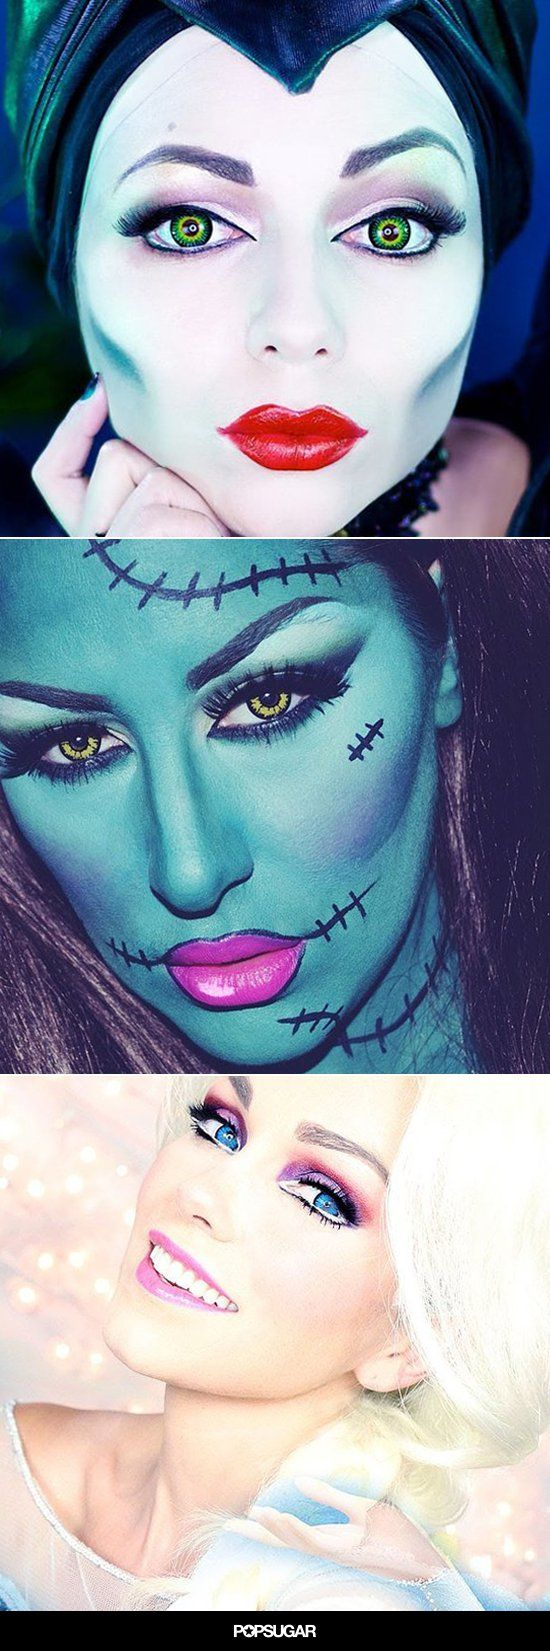 Pin for Later: 15 Beginner Hacks From Incredible Halloween Makeup Tutorials